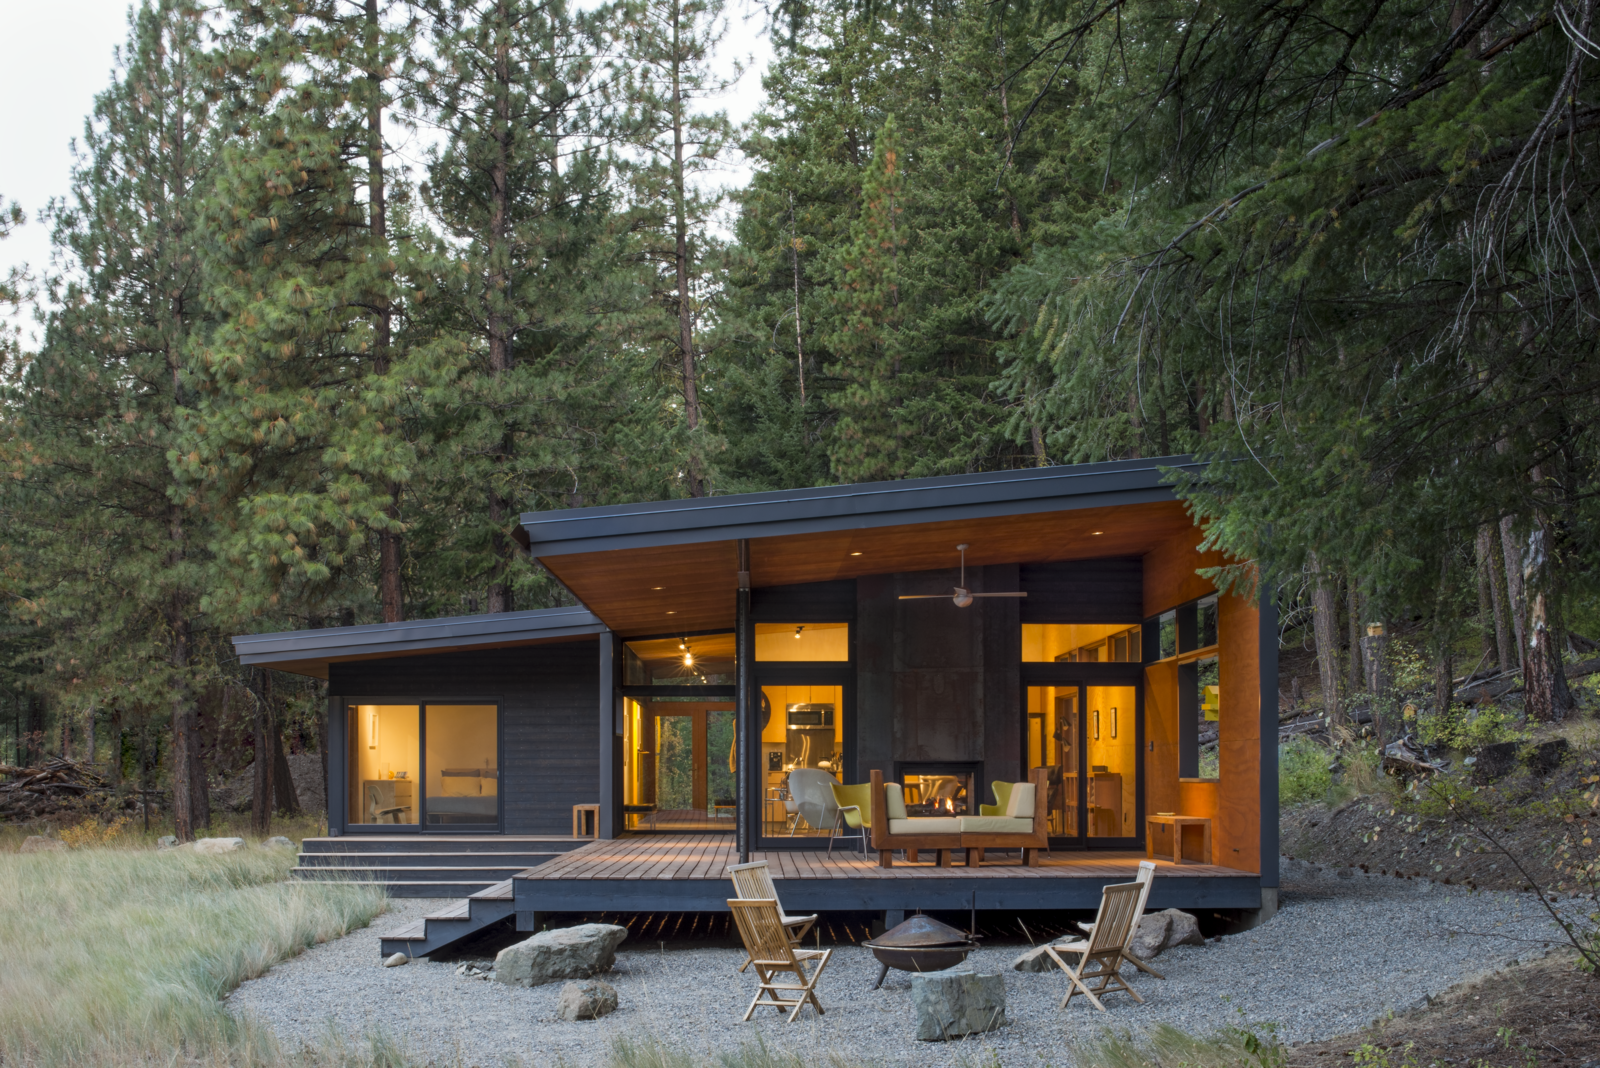 Exterior, Cabin Building Type, Wood Siding Material, and Glass Siding Material In Washington's Methow Valley, a modern cabin with an outdoor living room allows views of the surrounding woodland and meadow to perforate its volume.   By day, the Chechaquo Lot 6 cabin gives the impression of floating in a forest clearing; by night, its windows glow against the wooded darkness. From all vantage points, the landscape permeates this 1,000-square-foot cabin, designed for two outdoor enthusiasts and tucked at the toe of a dramatic slope in Winthrop, Washington.  Photo 2 of 10 in A Lean Cabin in Washington Dismantles the Indoor/Outdoor Divide